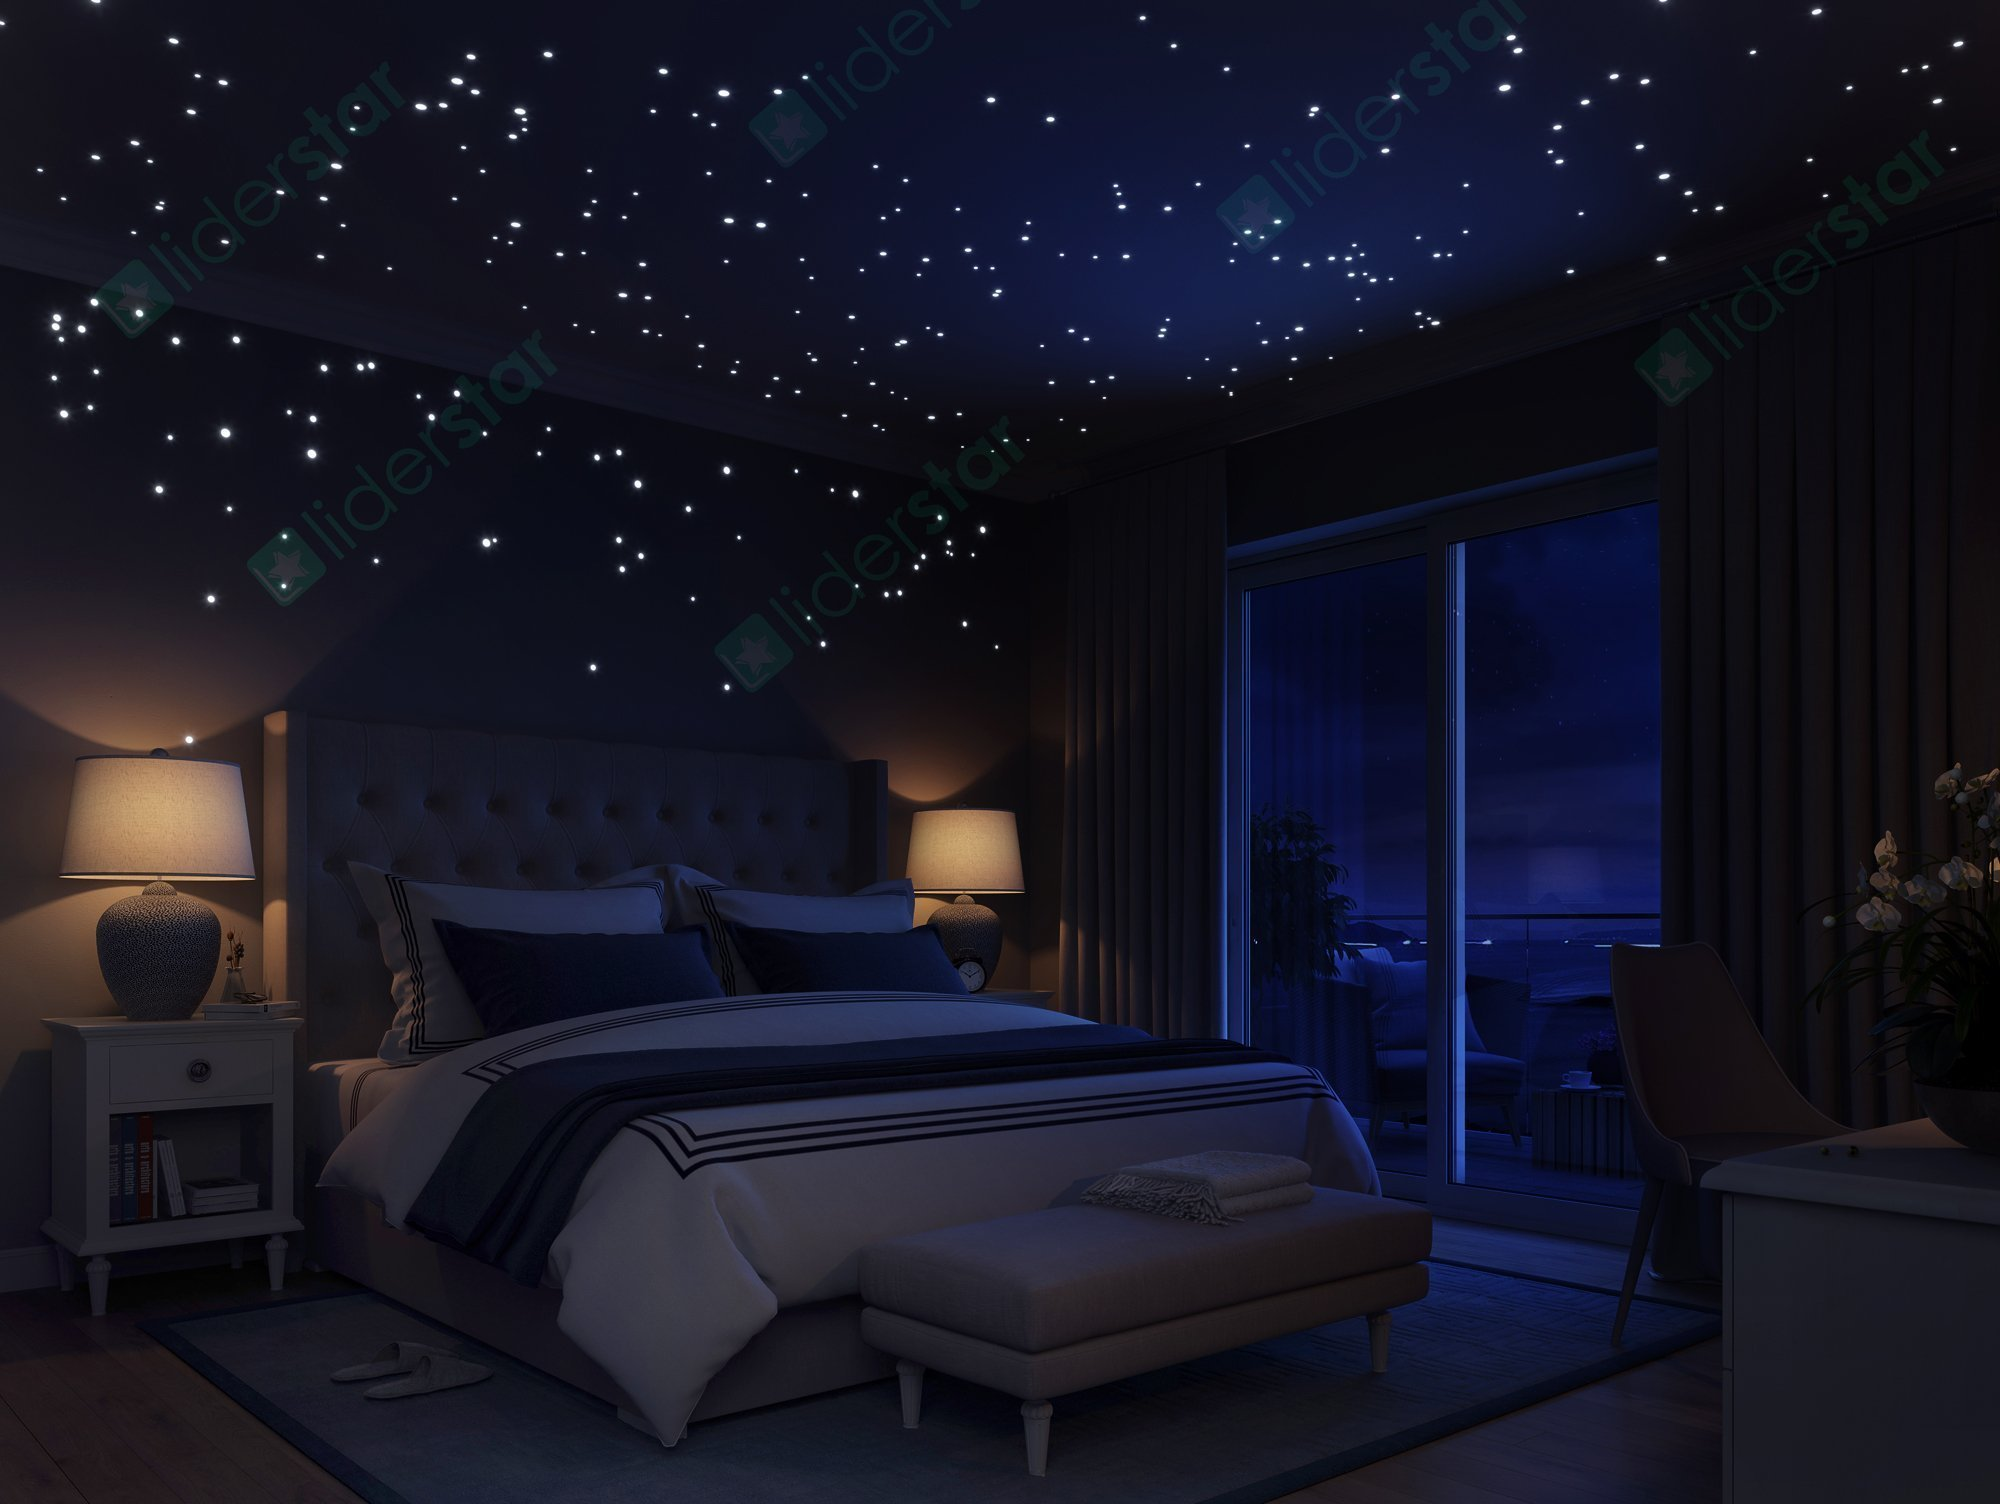 Best Glow In The Dark Stars Wall Stickers By Liderstar 252 Dots 1 Moon For Sta Ebay With Pictures